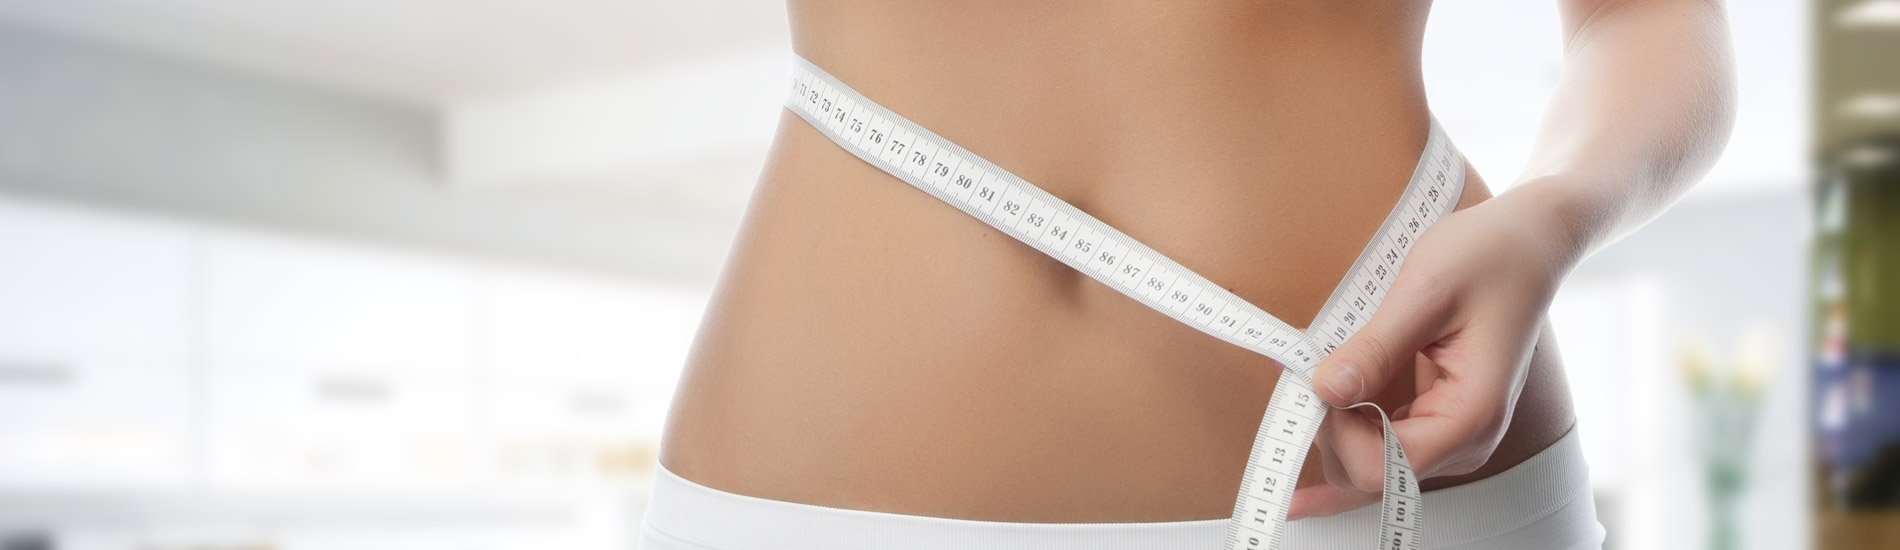 i-Lipo Ultra Laser Fat Reduction